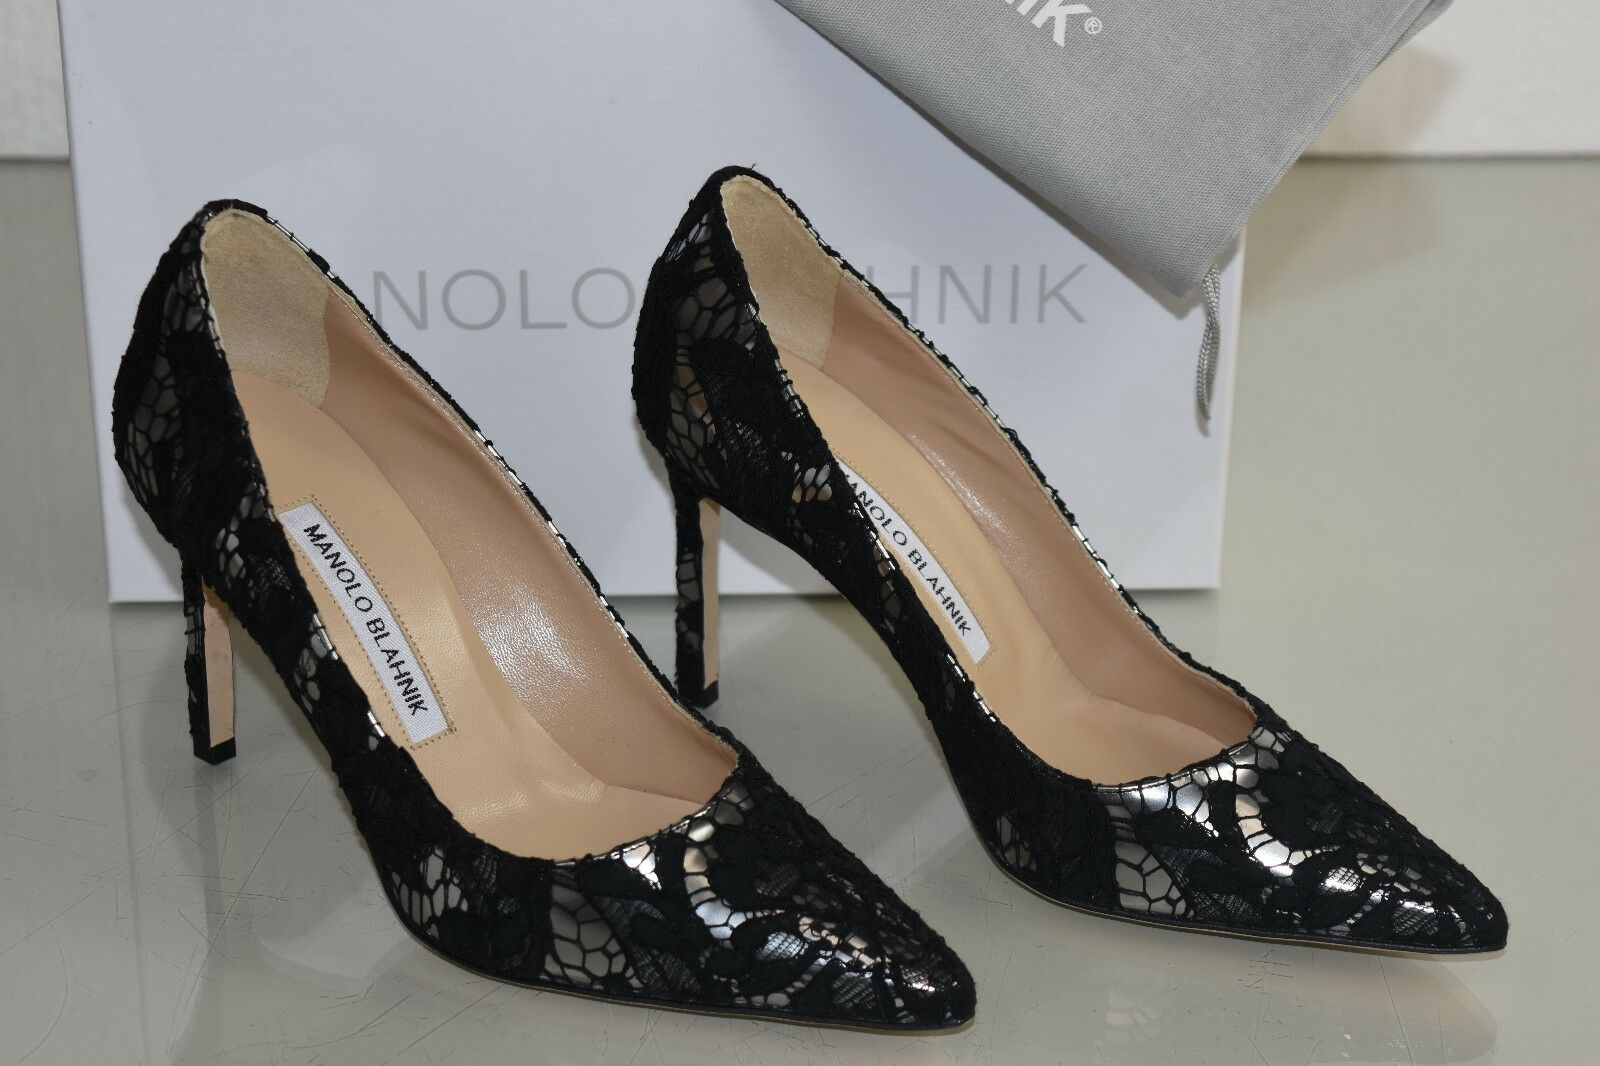 745 New Manolo Blahnik BB Lame 90 Pumps Silver w Black Lace Over shoes 36